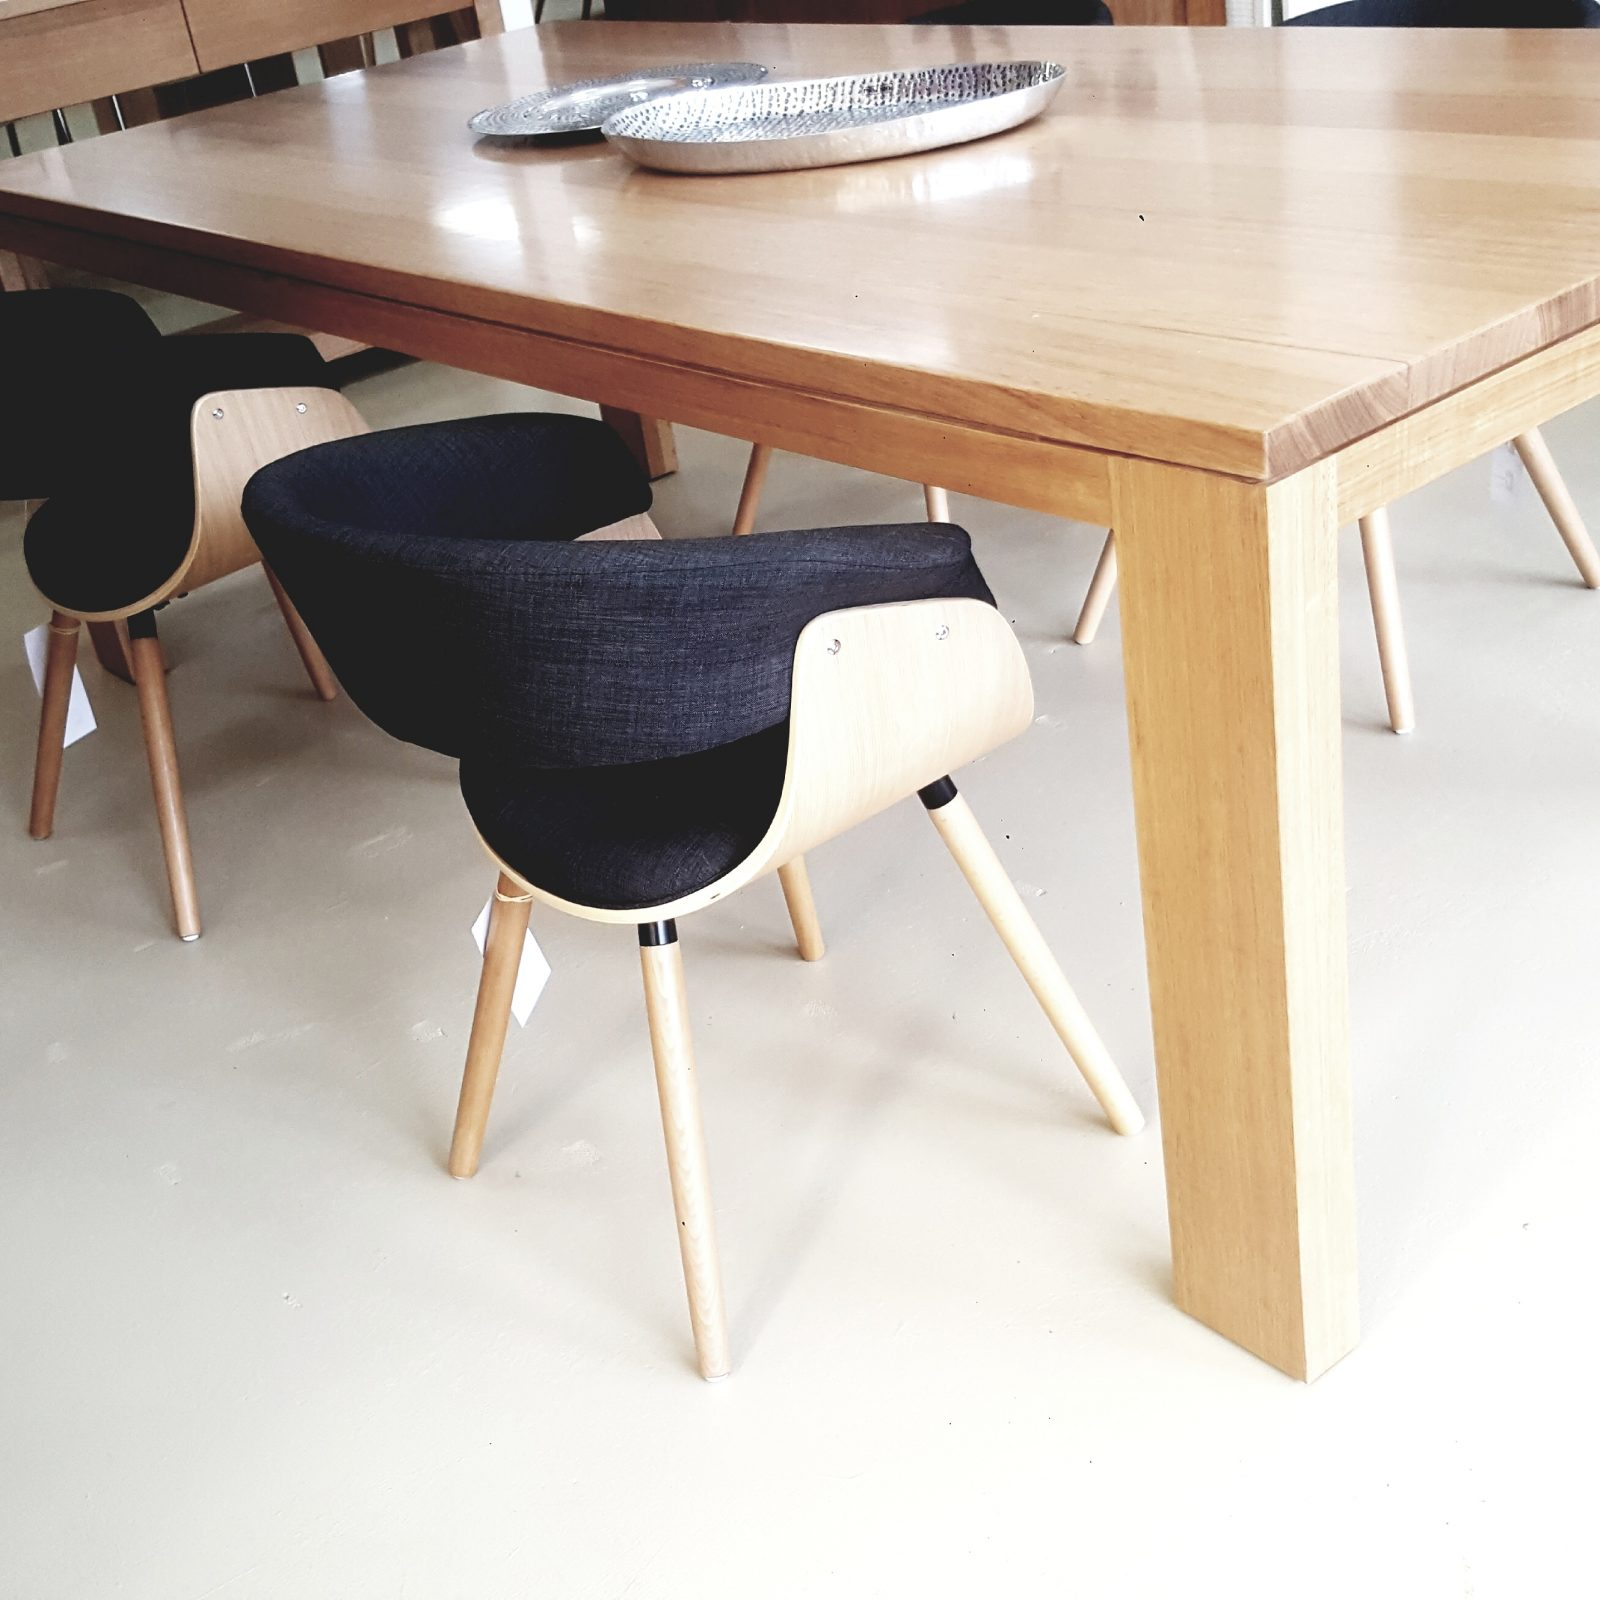 Hahndorf Dining table Image